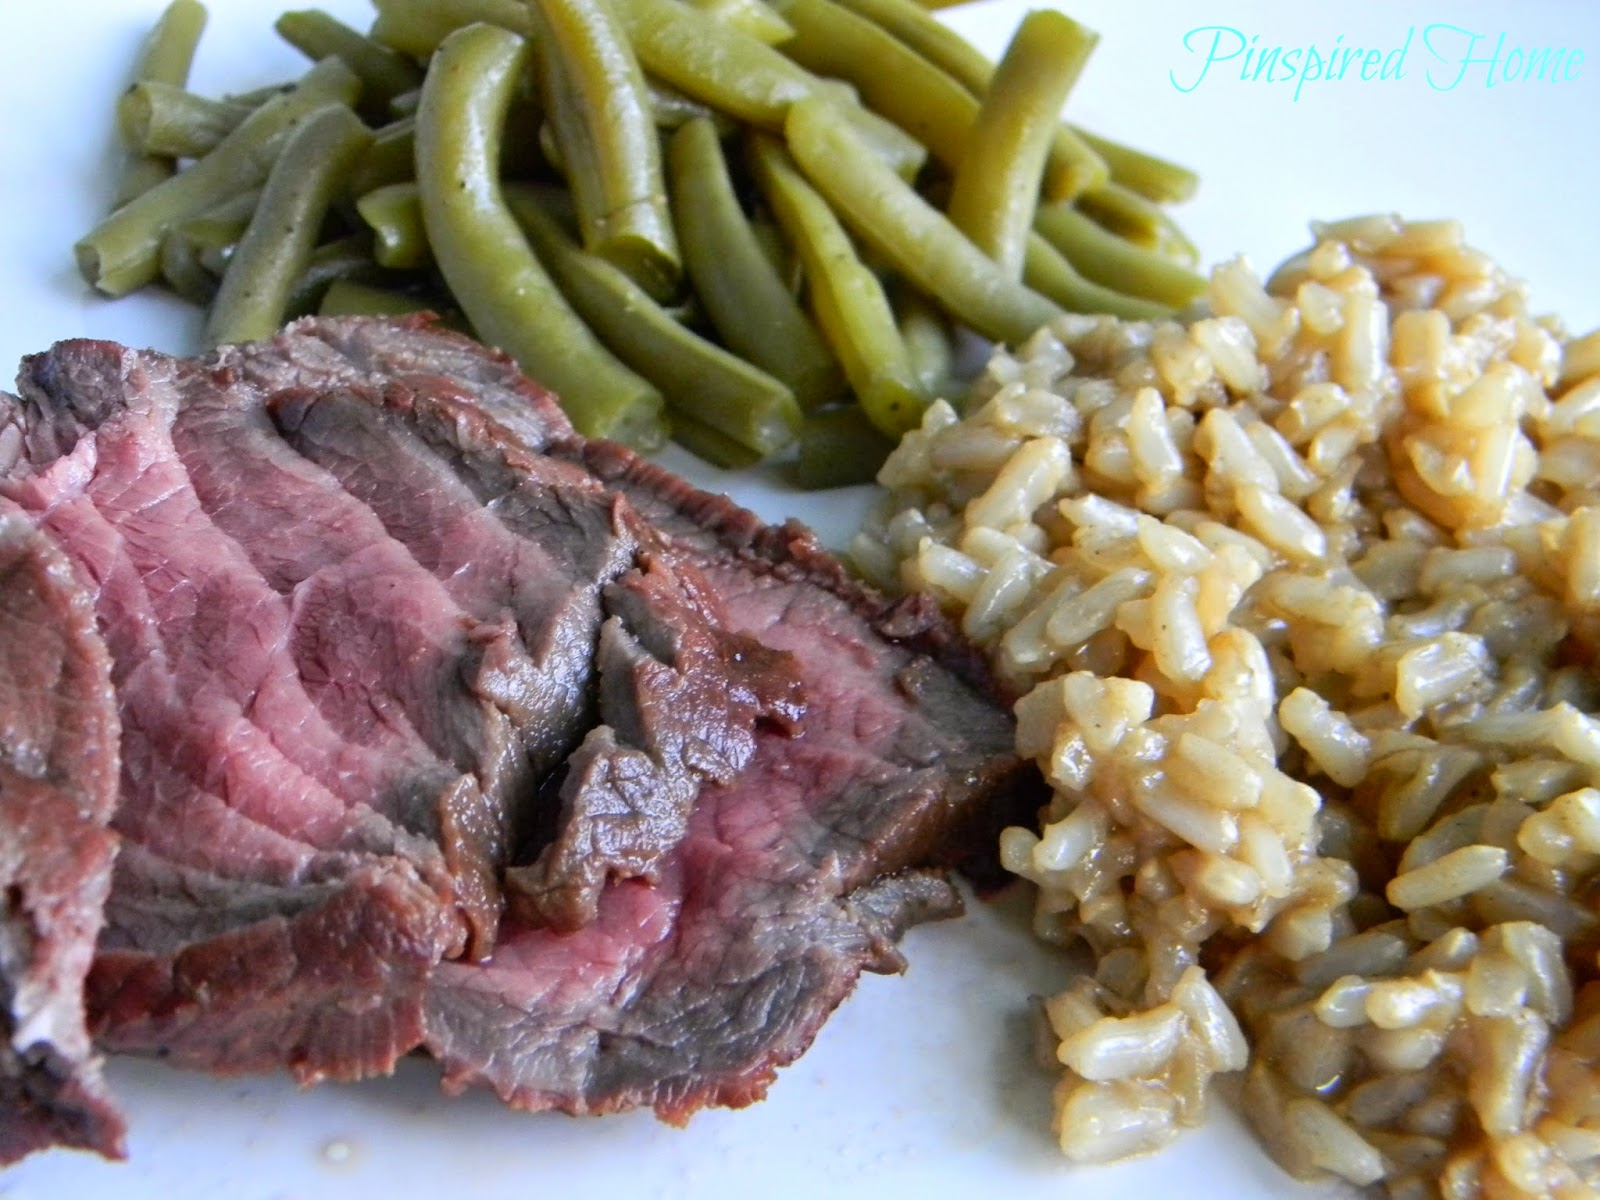 ... Home: So I Married A Hunter... Delicious Ways to Cook That Venison